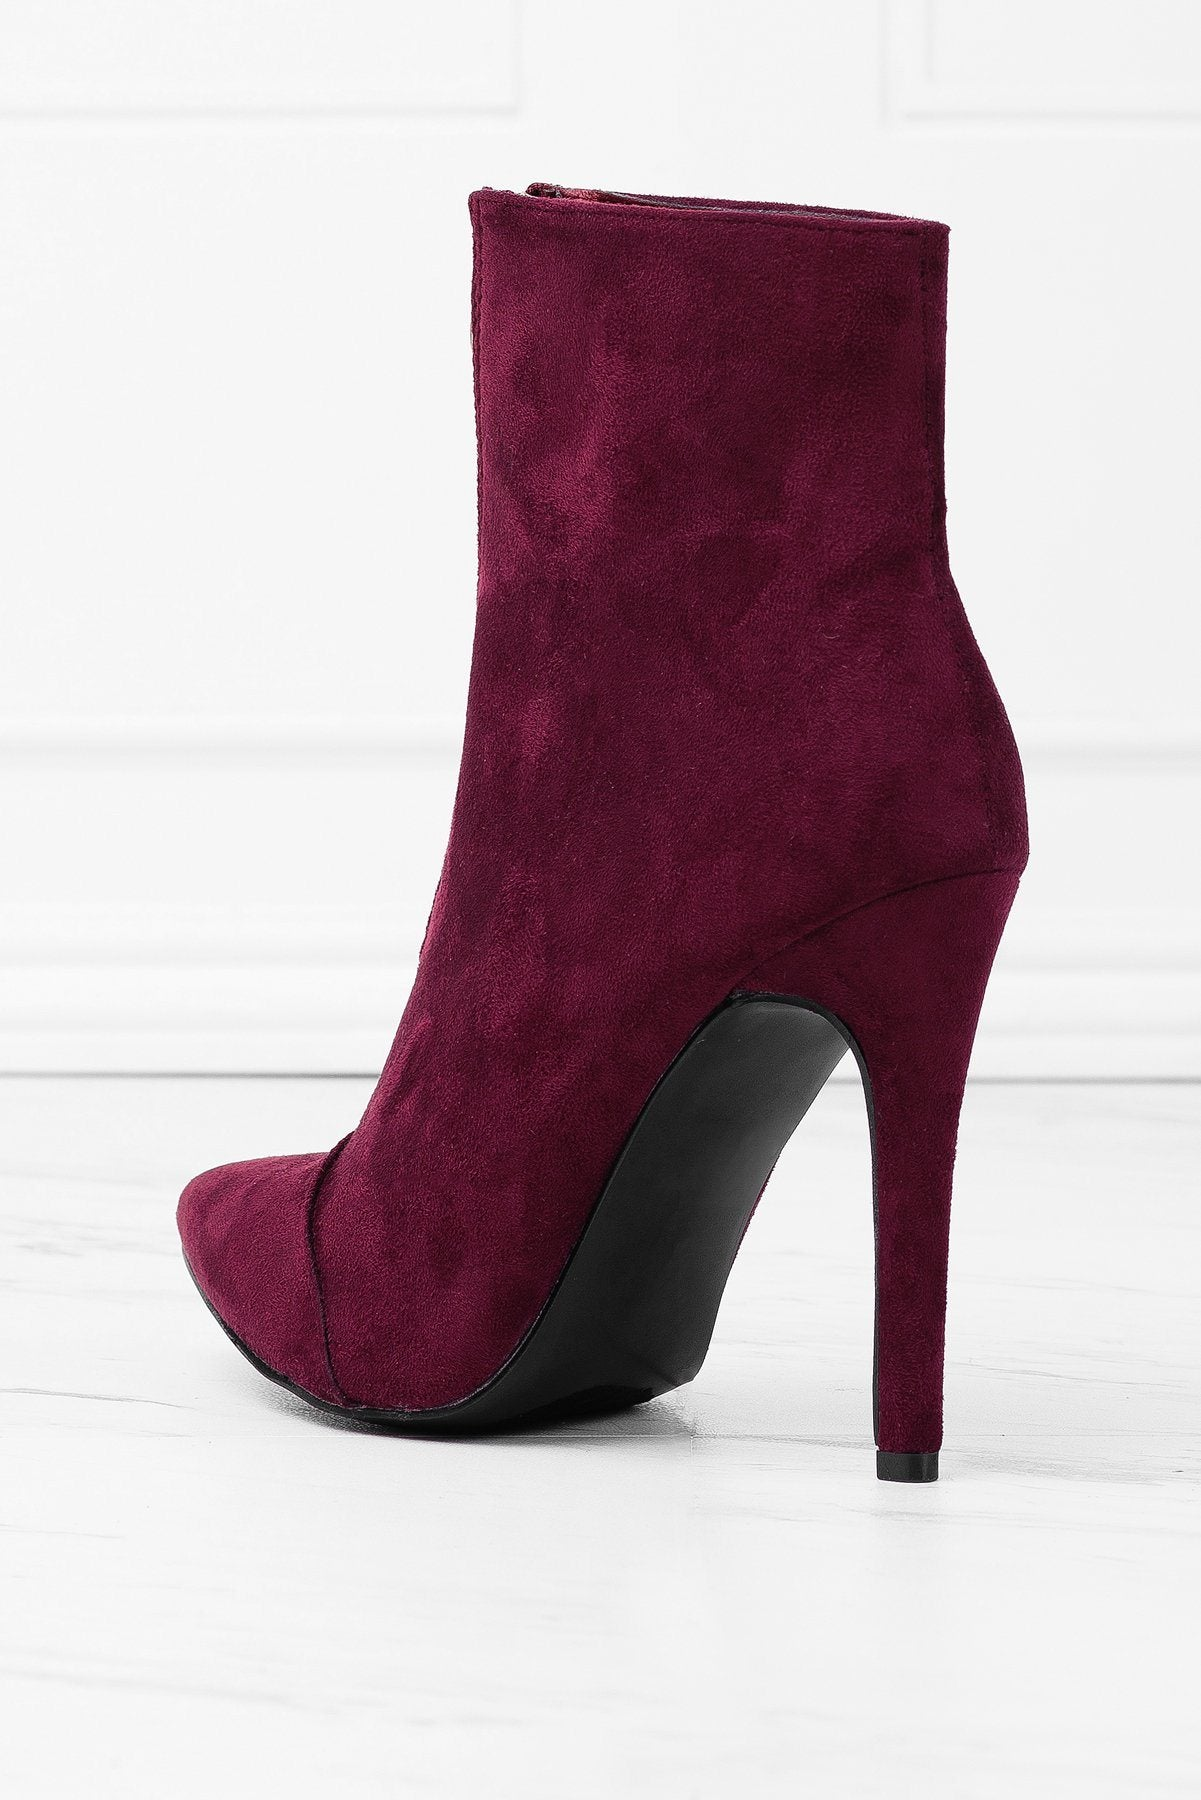 Shoes - Over The Edge Booties - Wine